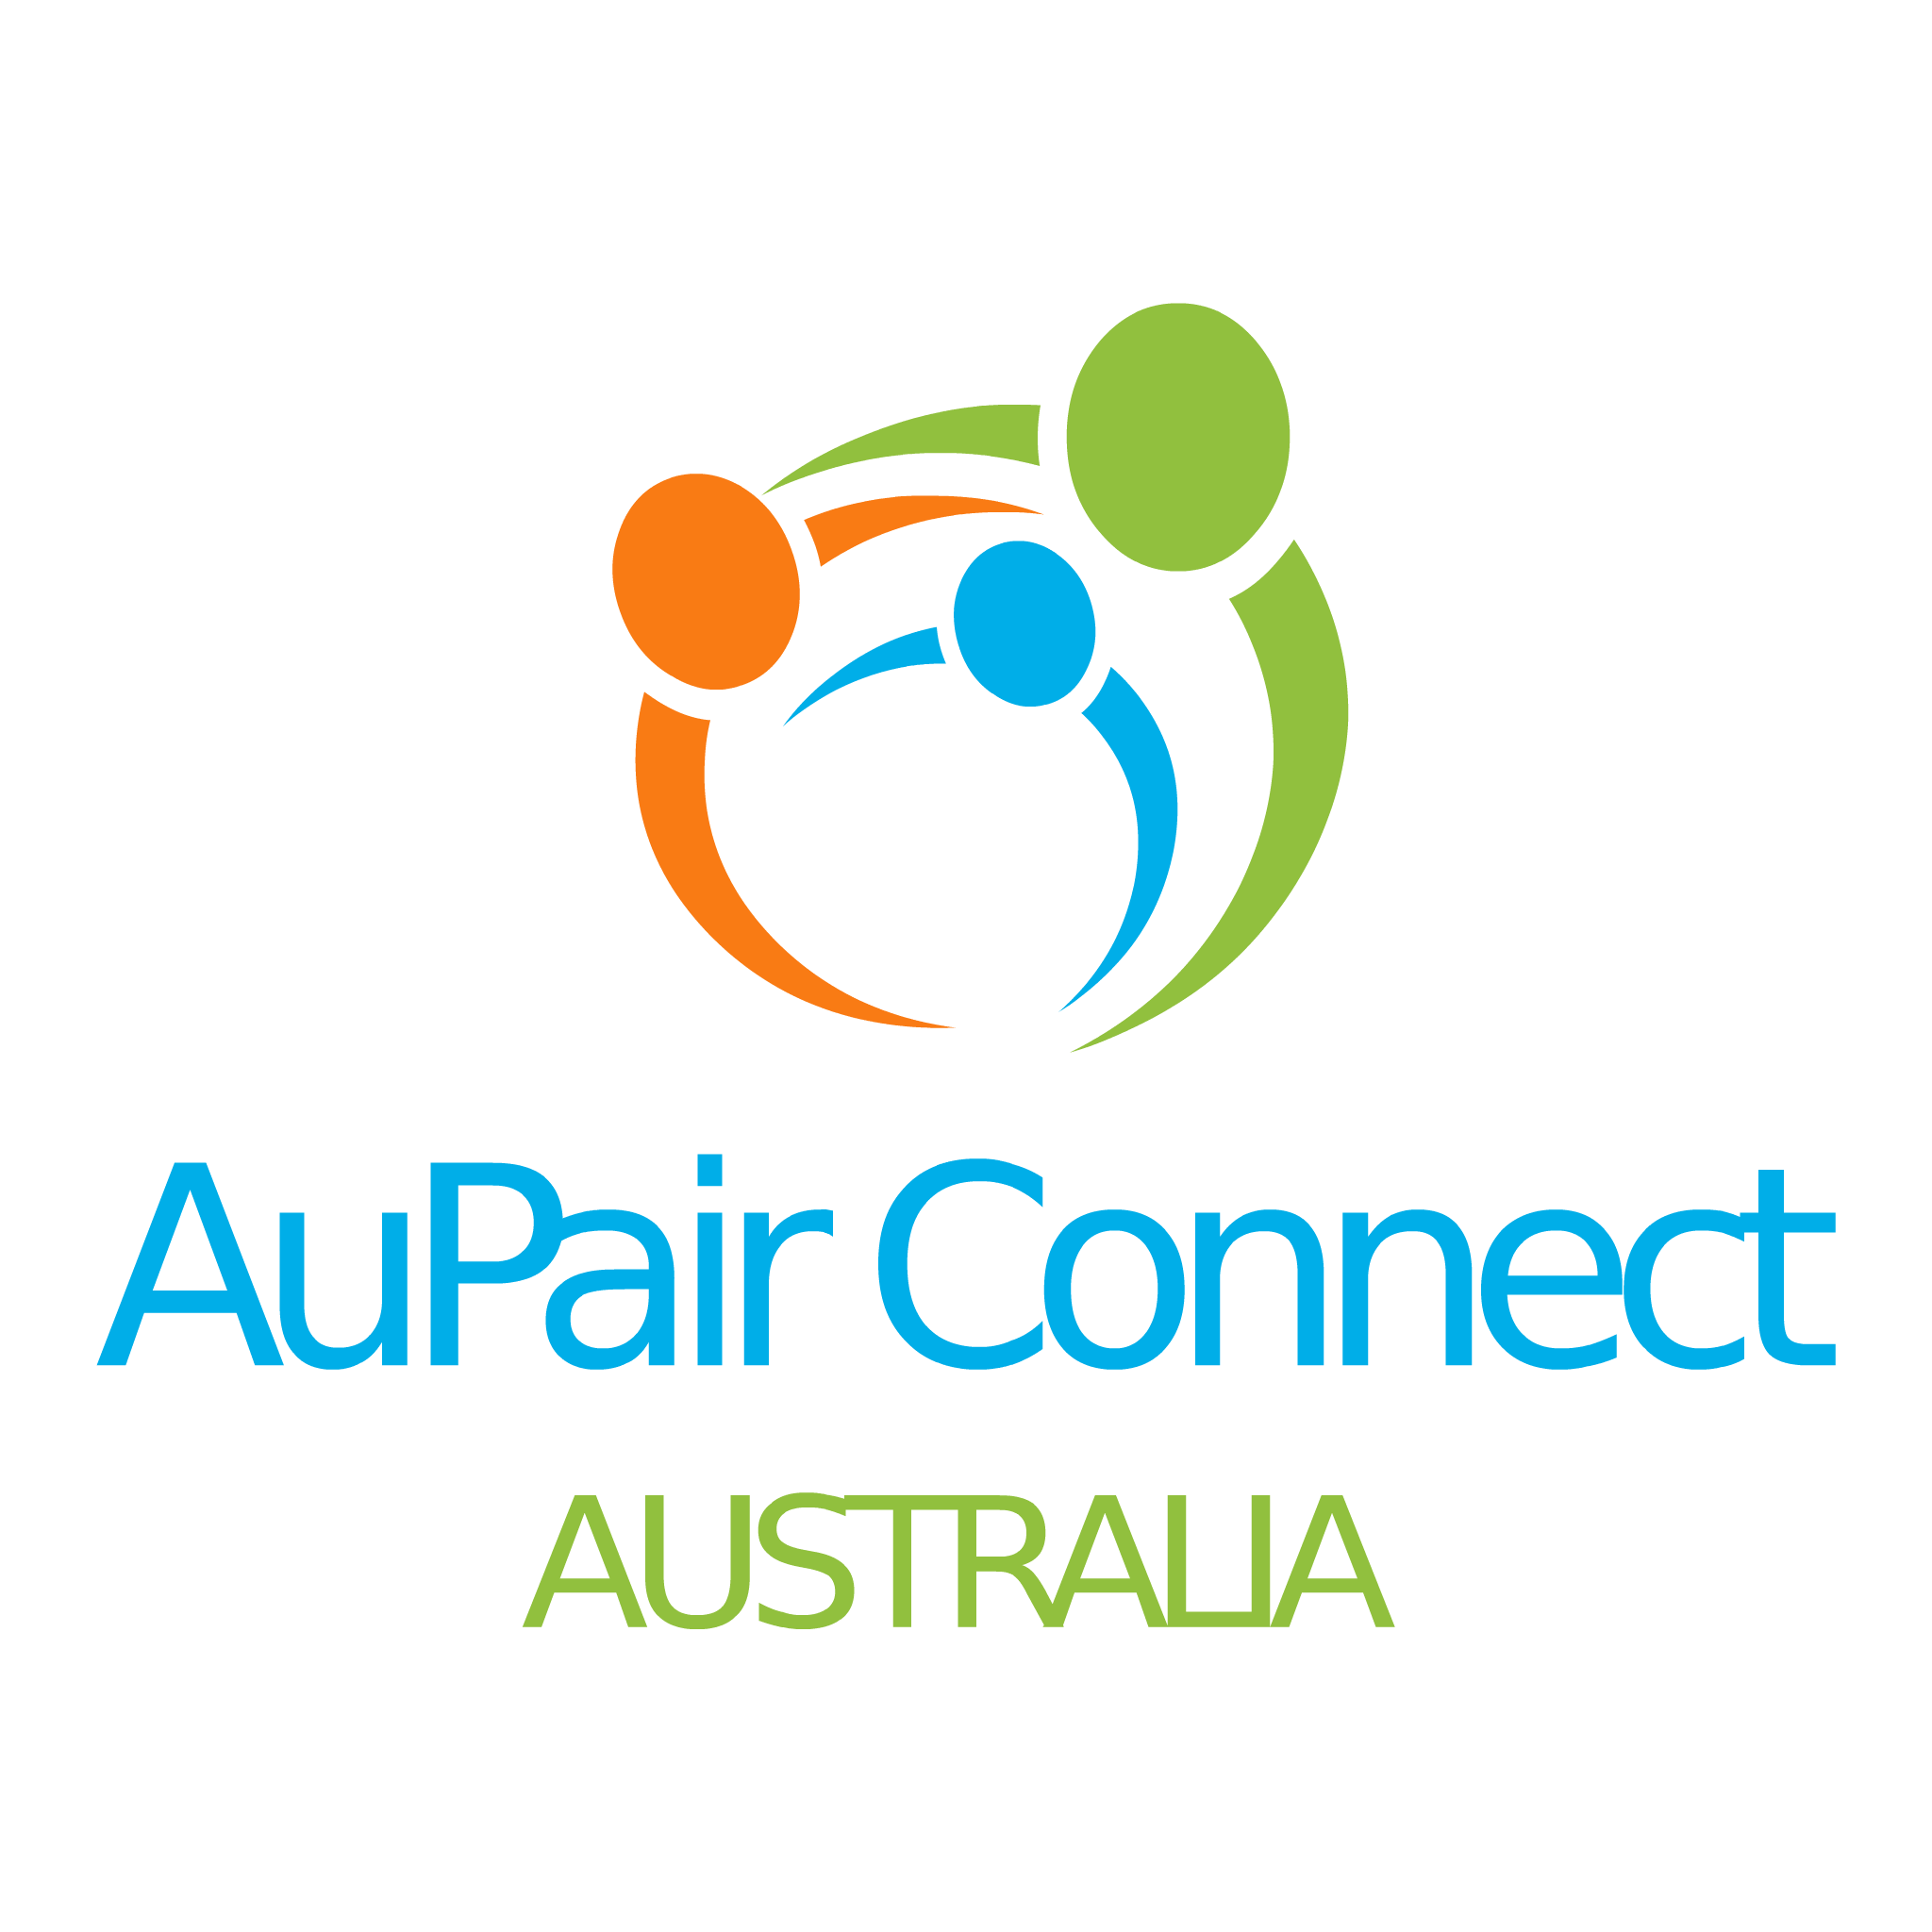 AuPair Connect Australia